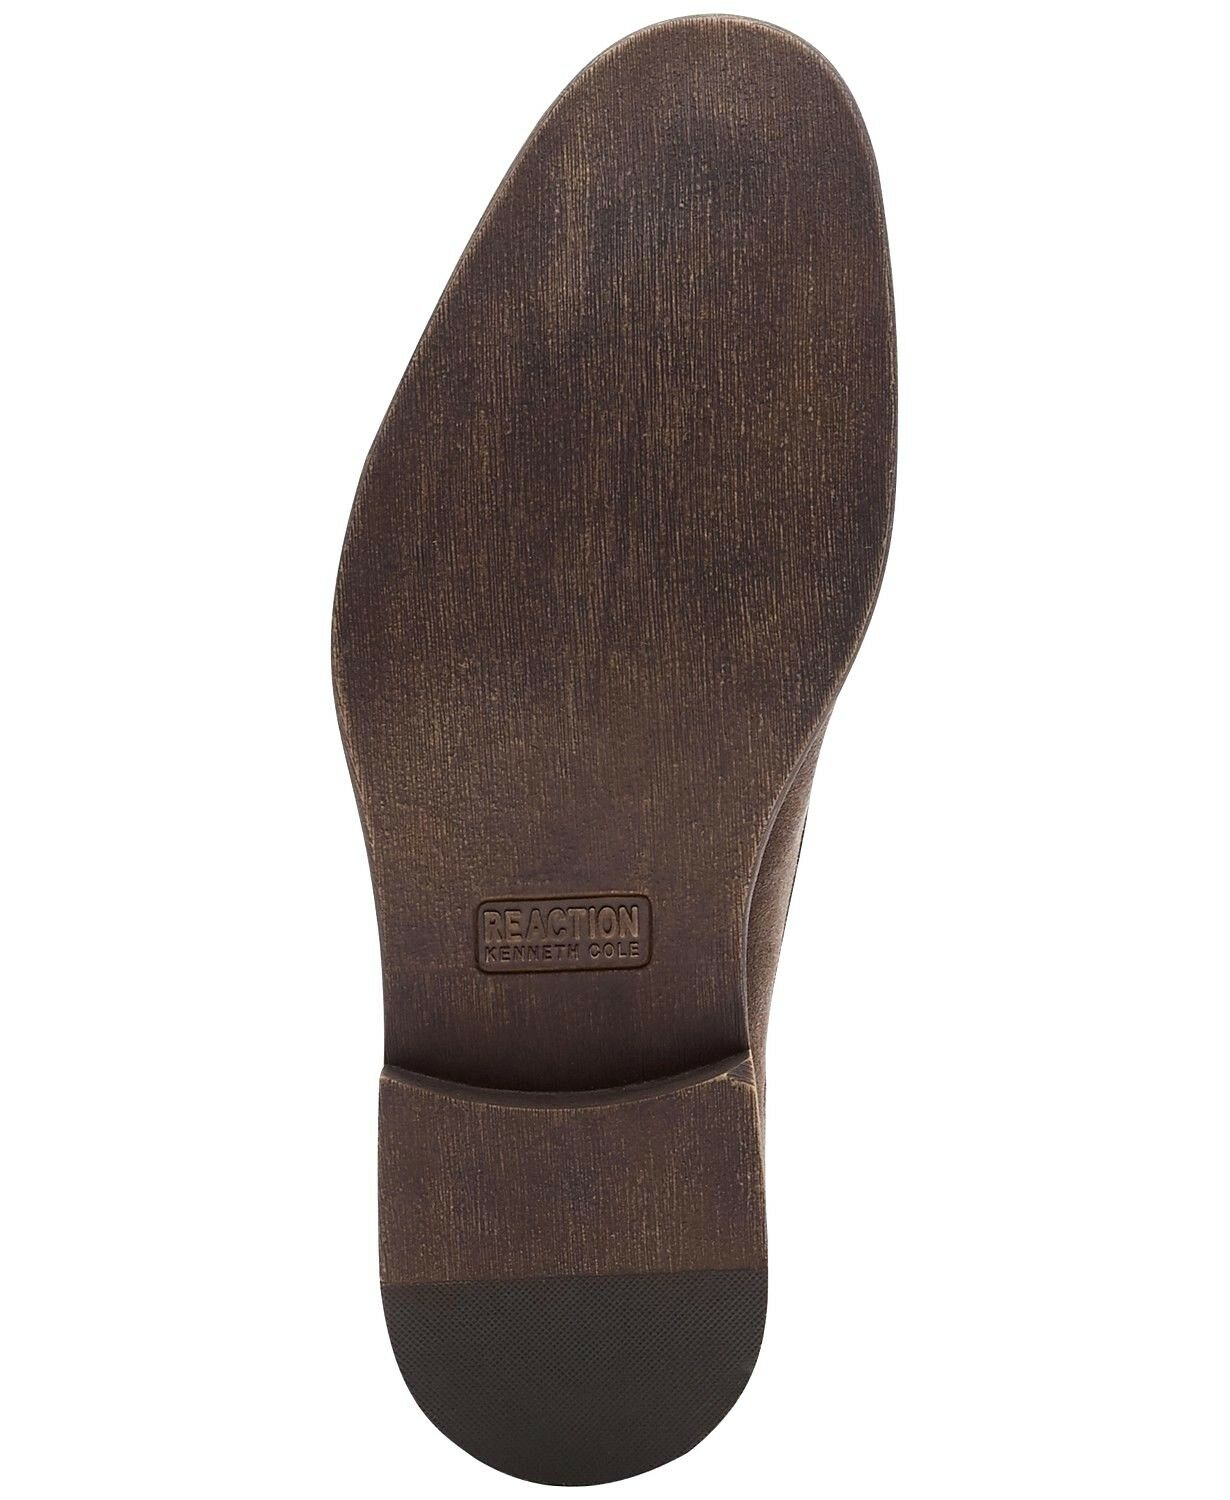 Kenneth Cole Cole Cole REACTION Men's Design 20644 Monk-Strap Loafer, Taupe, 7 M 778cb8